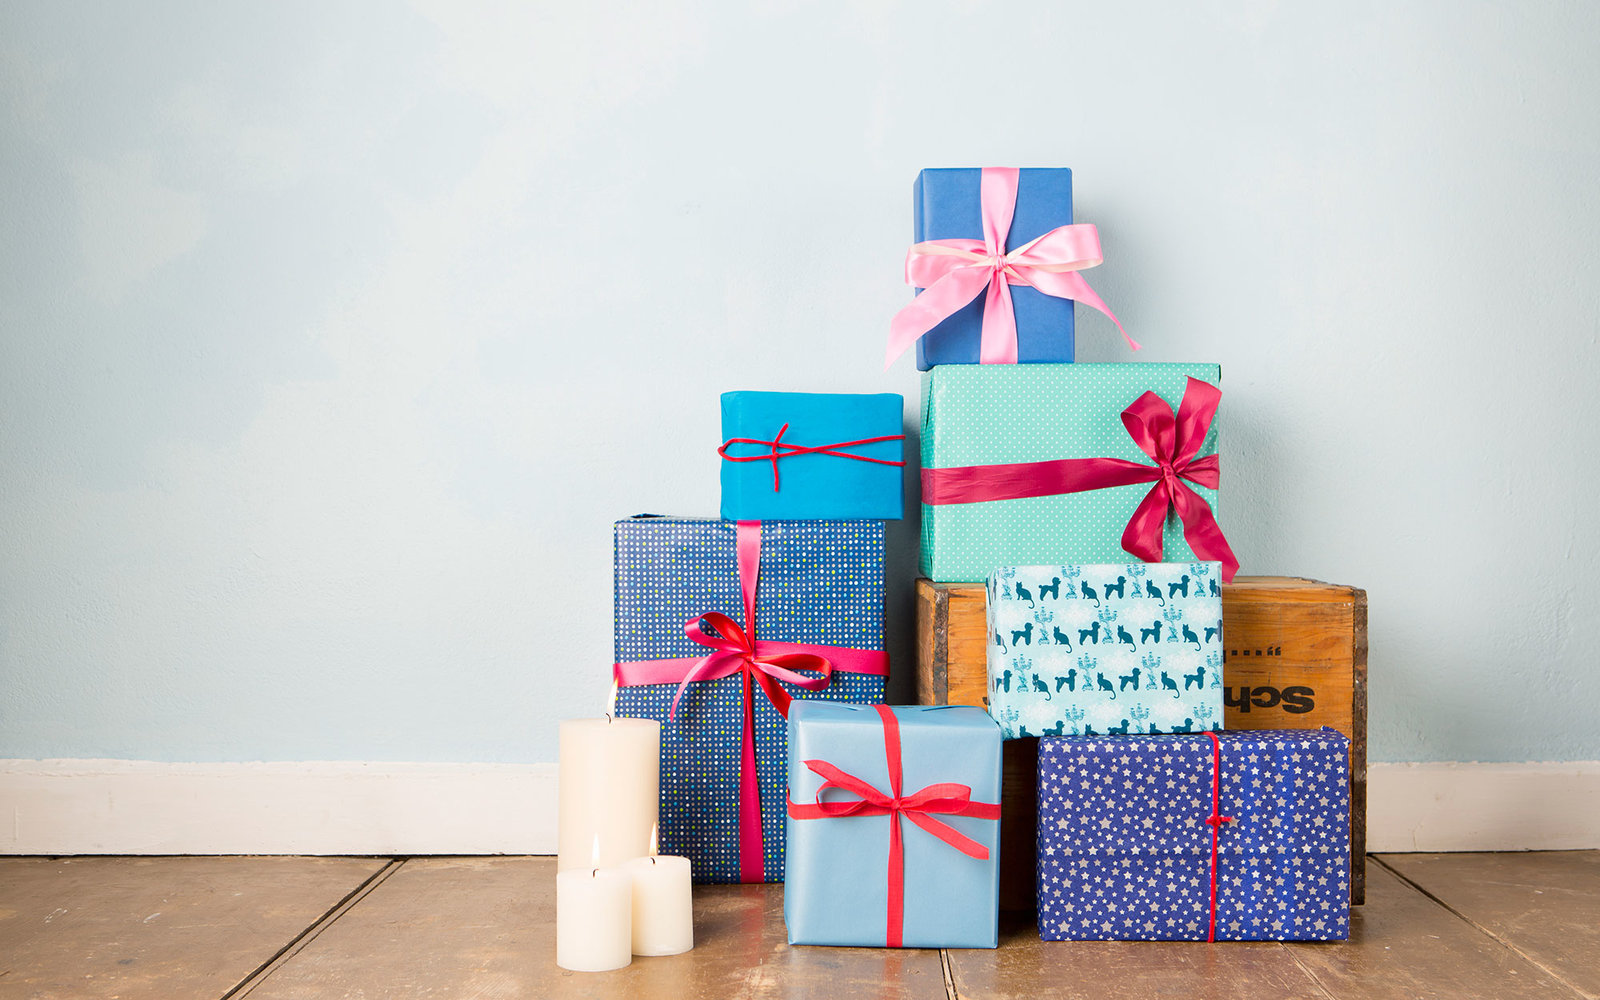 How to Select a Perfect Gift?